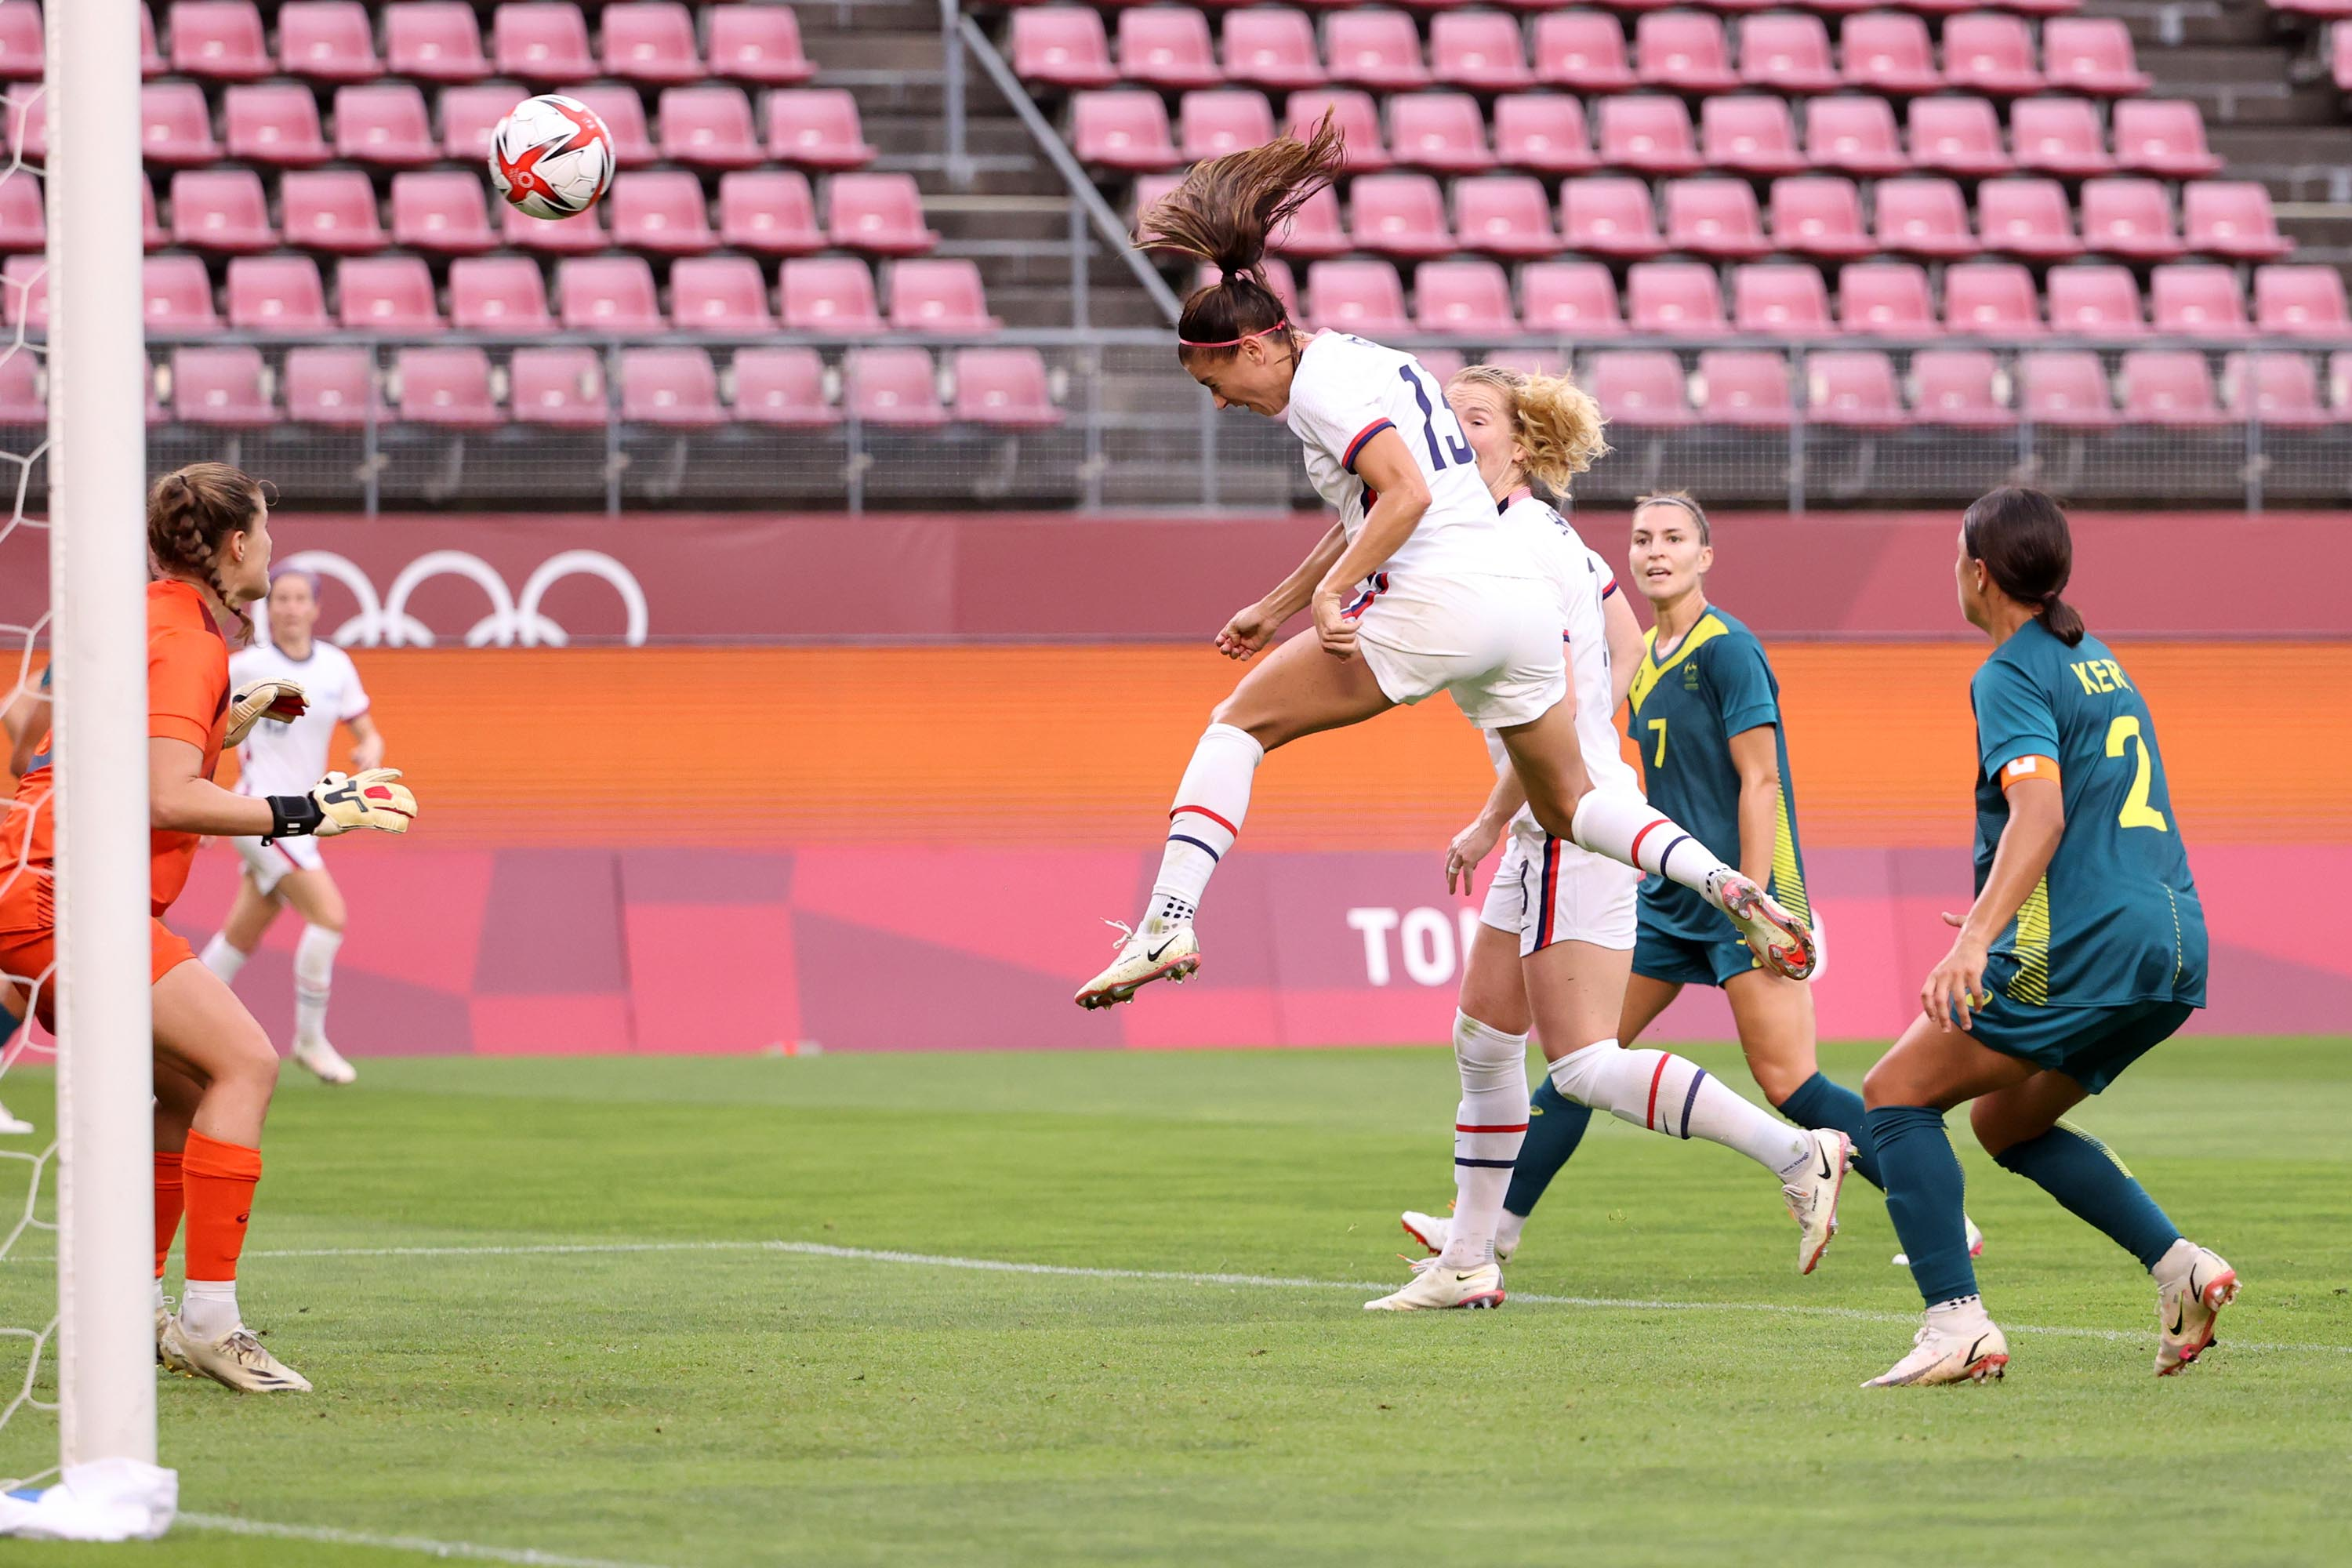 Alex Morgan scores a goal that is ruled out, during the Women's Football Group G match between USA and Australia on July 27.